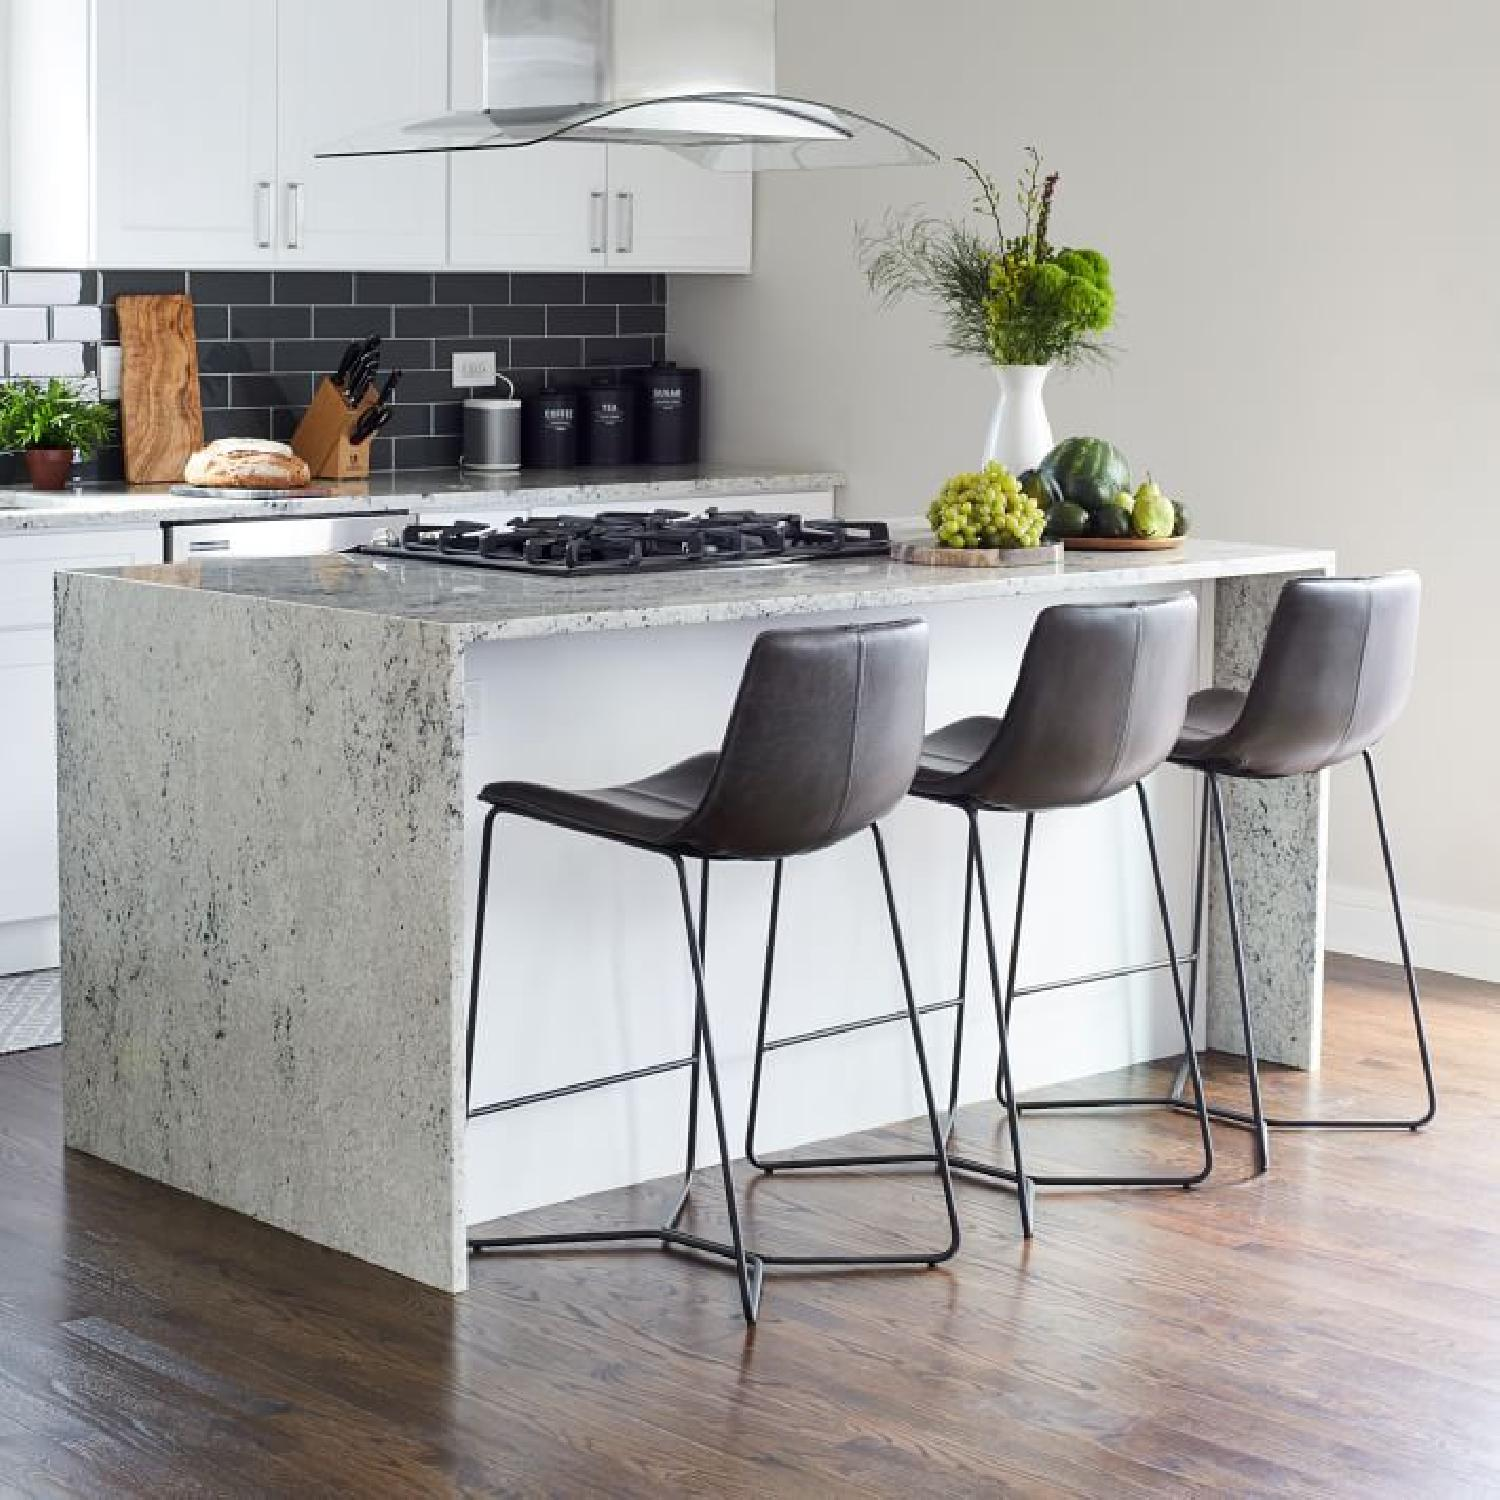 West Elm Slope Leather Counter Stools - image-5